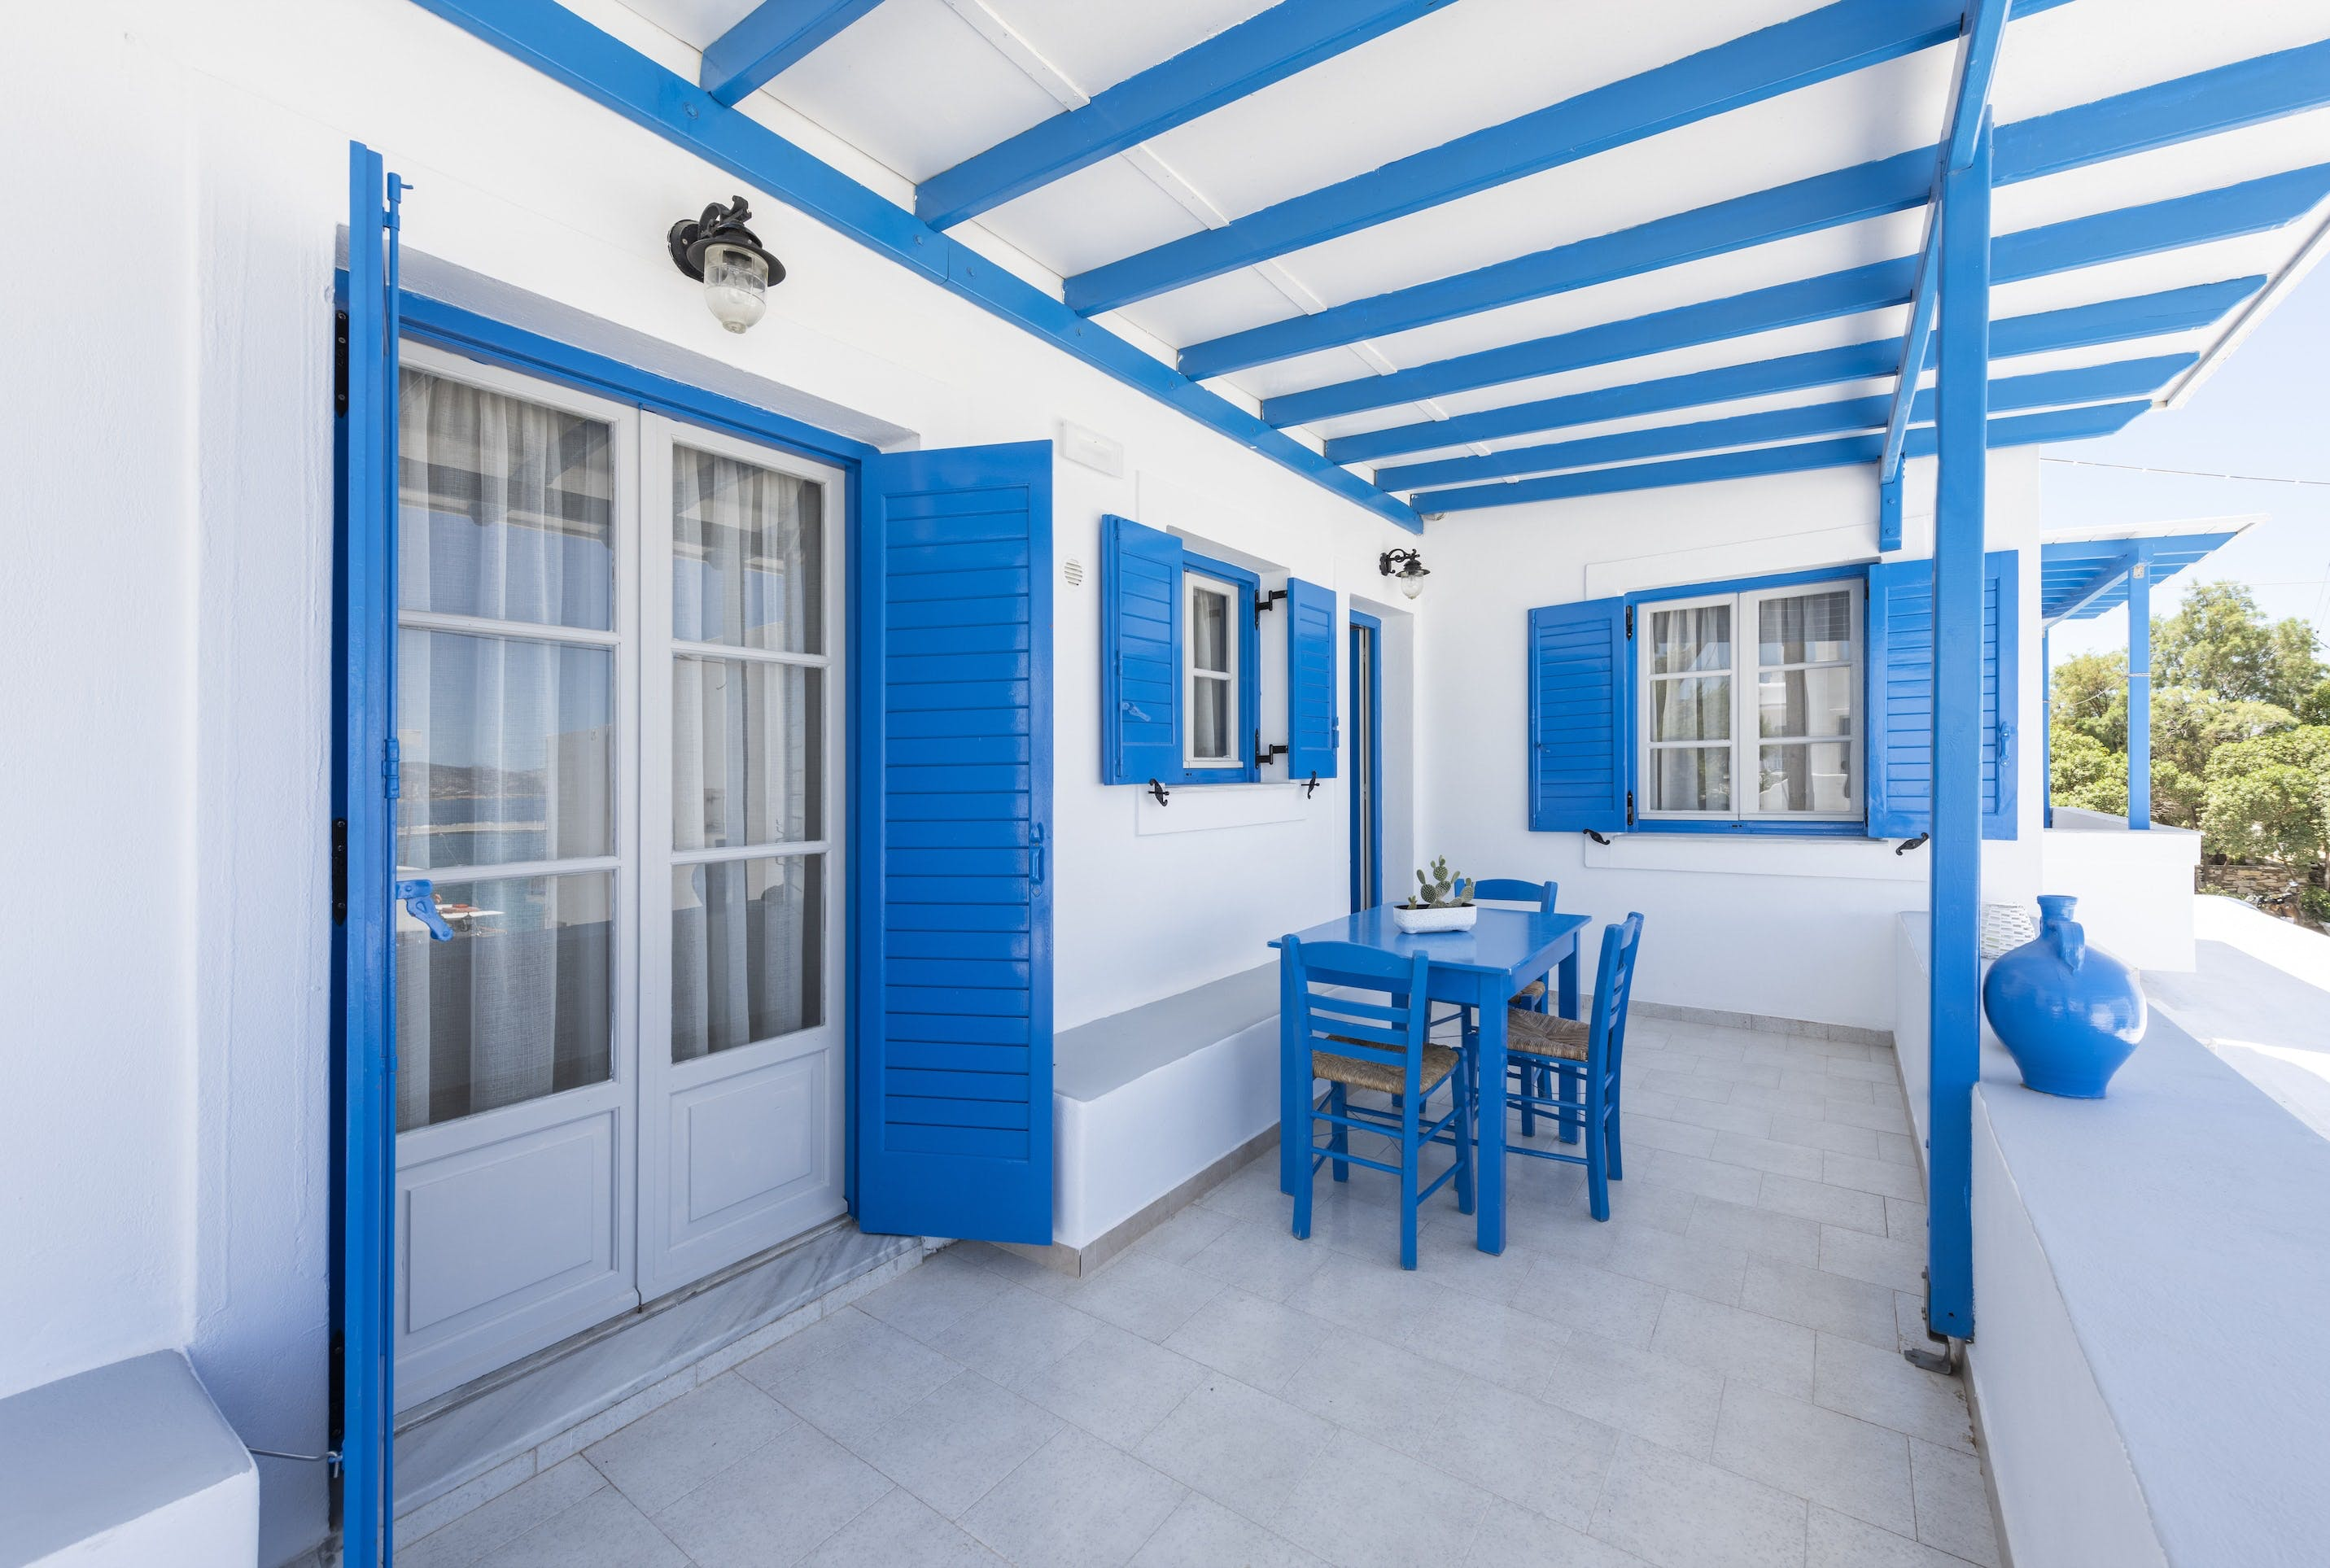 Two Bedroom with seaview balcony